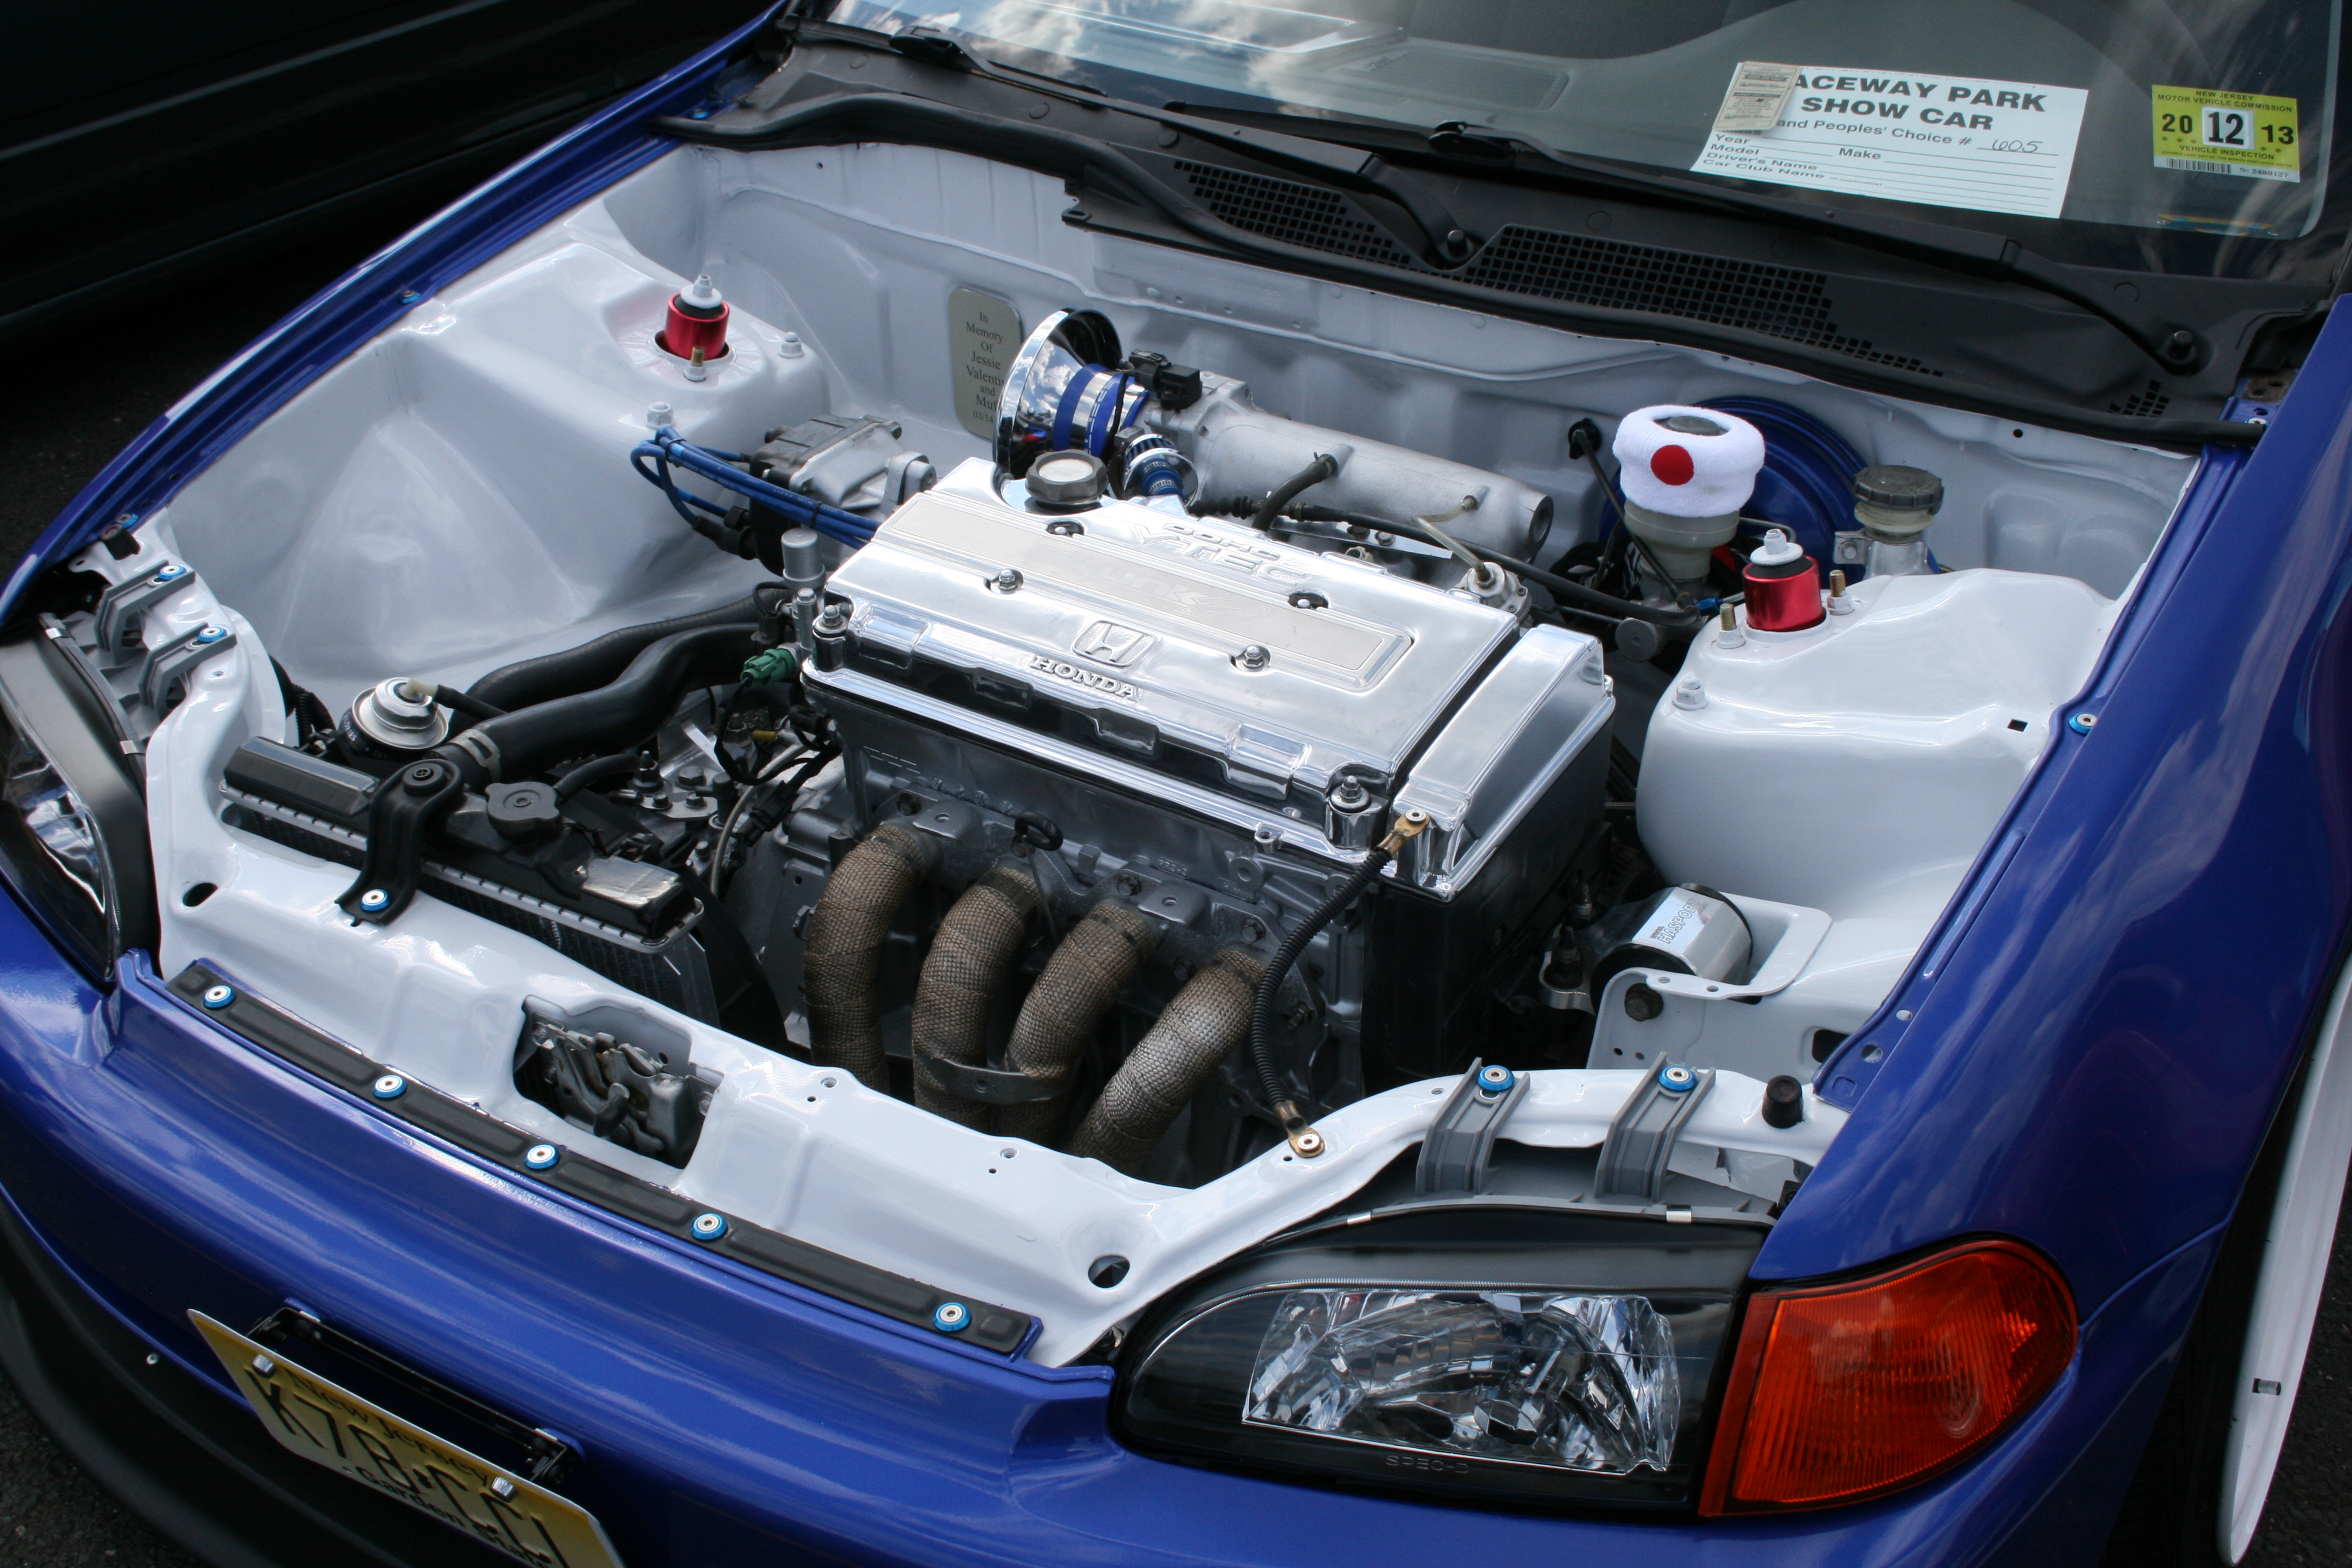 also Custom Honda Civic Eg Hatchback Integra Front in addition D Civic Eg Teal Ls Swap Trade Whip Engine Bay also F E B Ee Def B Dfc in addition Yjgz G. on integra wire tuck engine bay